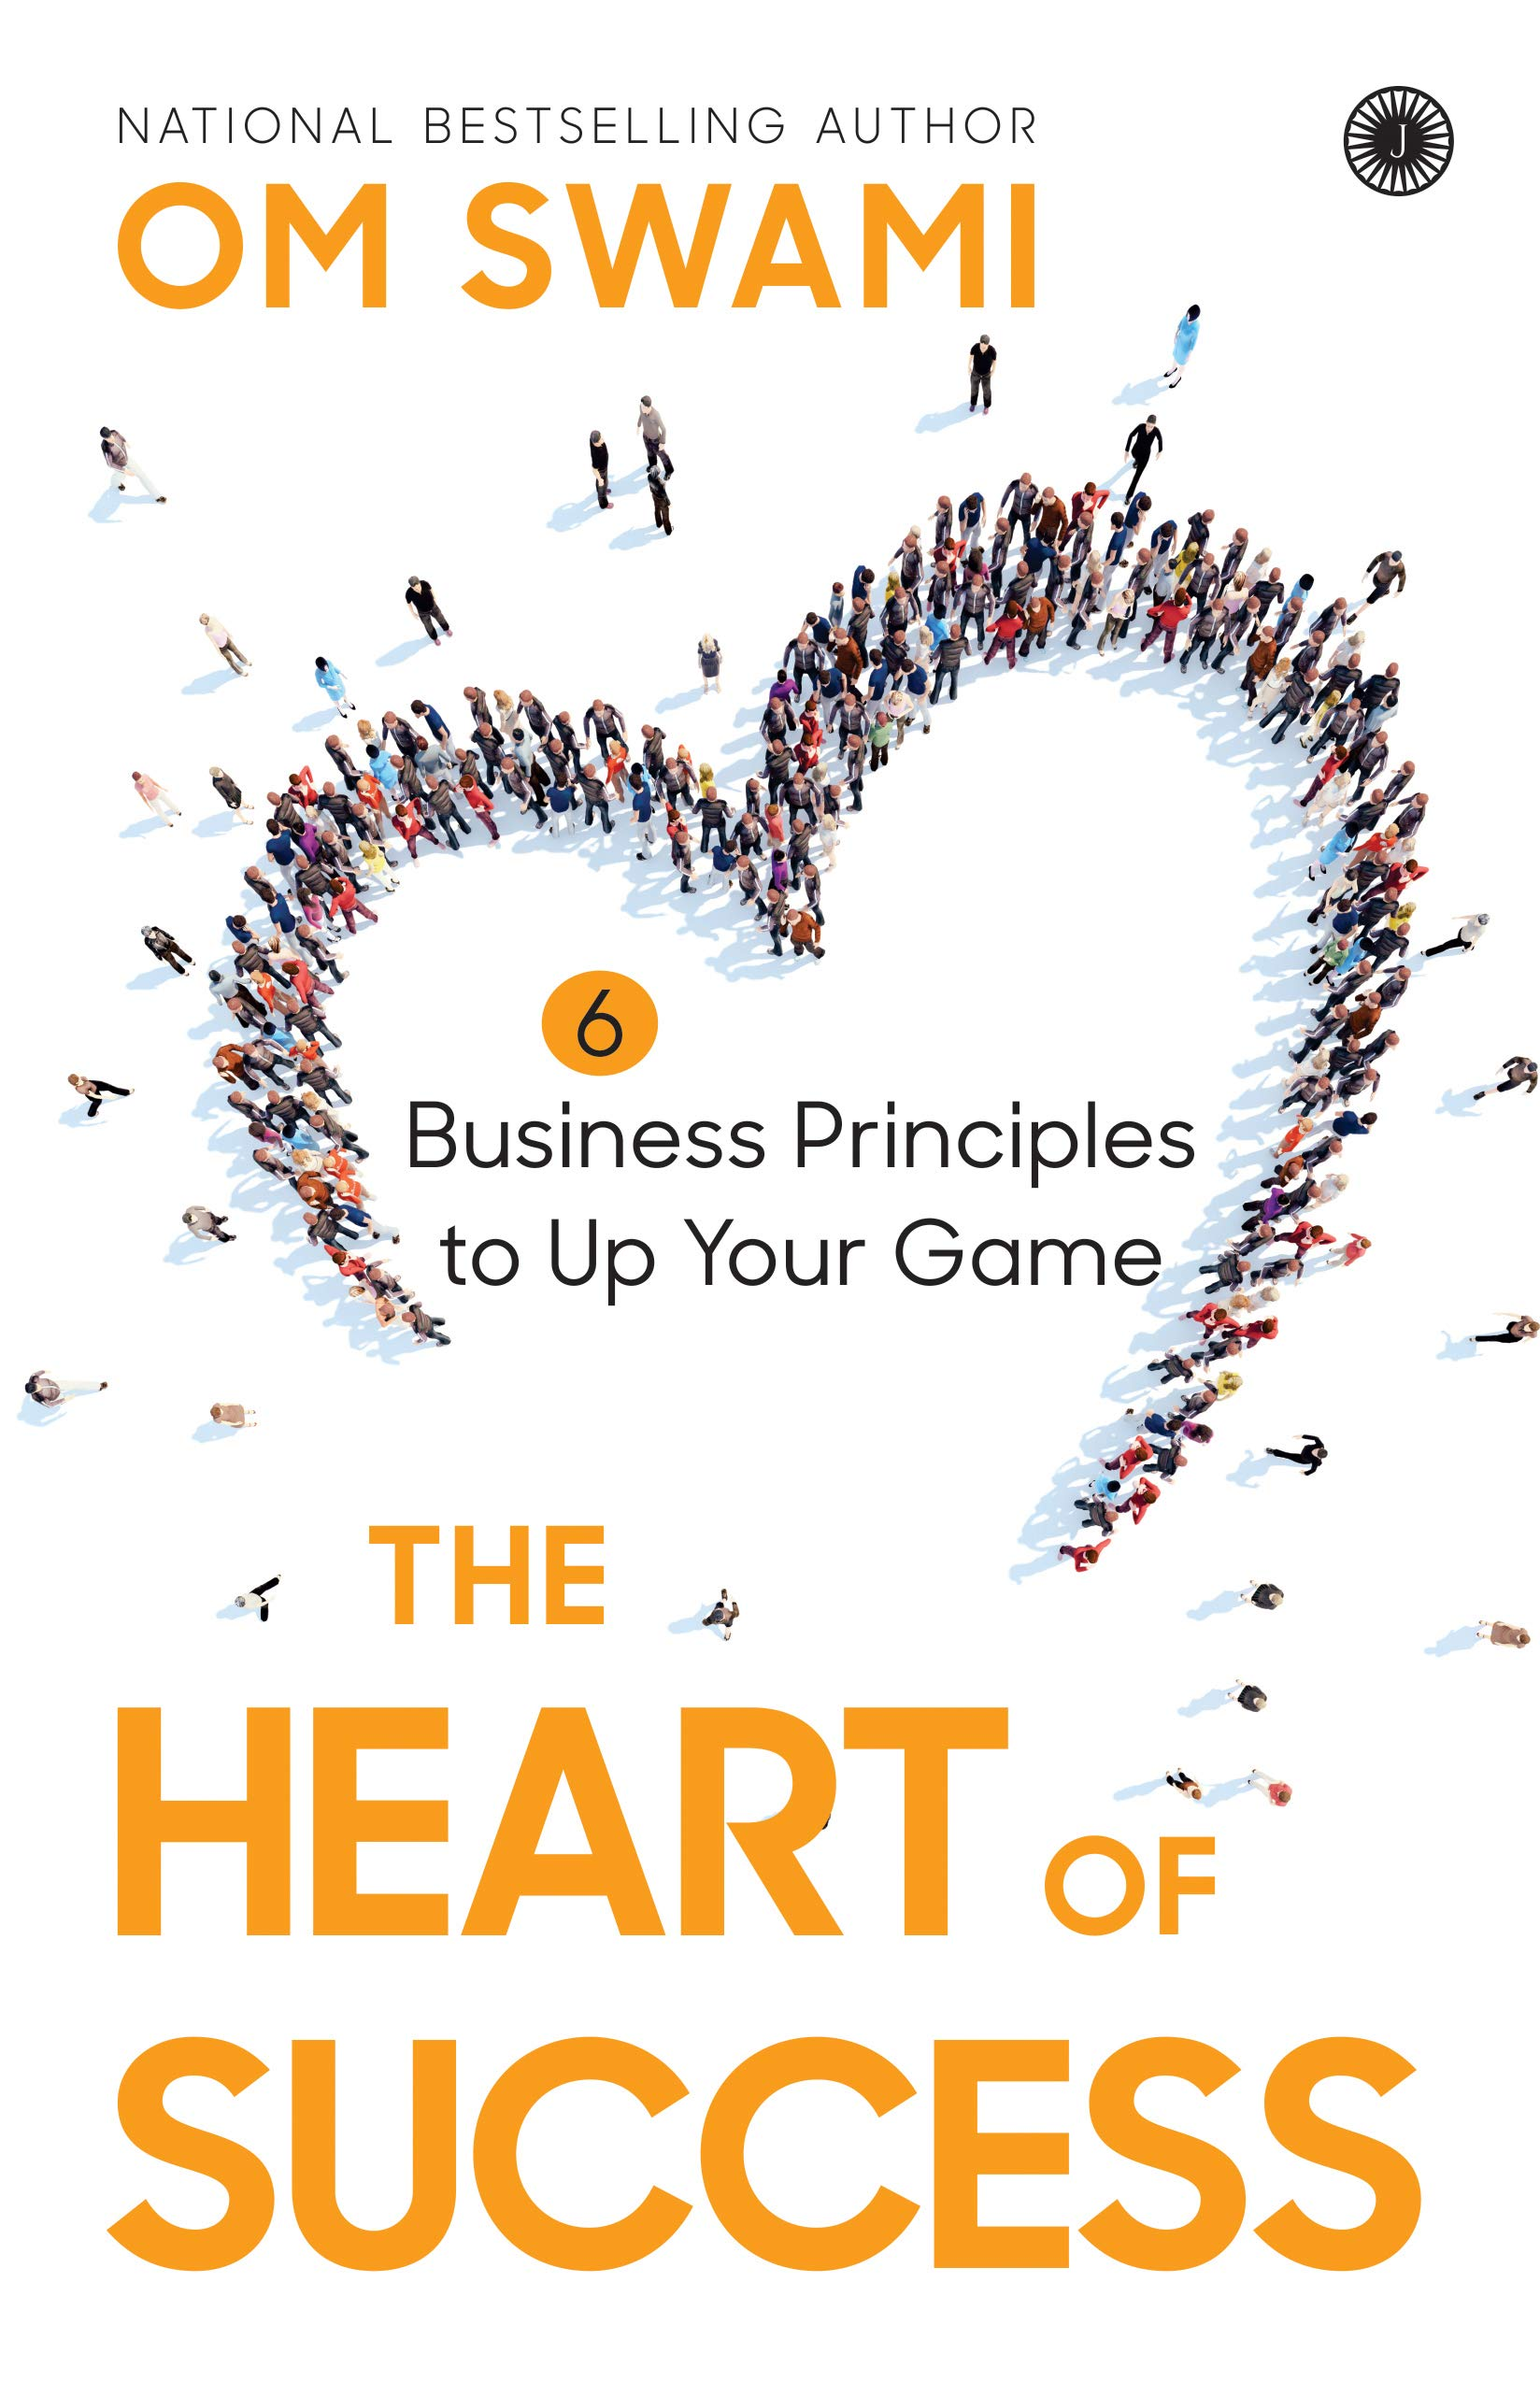 THE HEART OF SUCCESS (6 BUSINESS PRINCIPLES TO UP YOUR GAME)